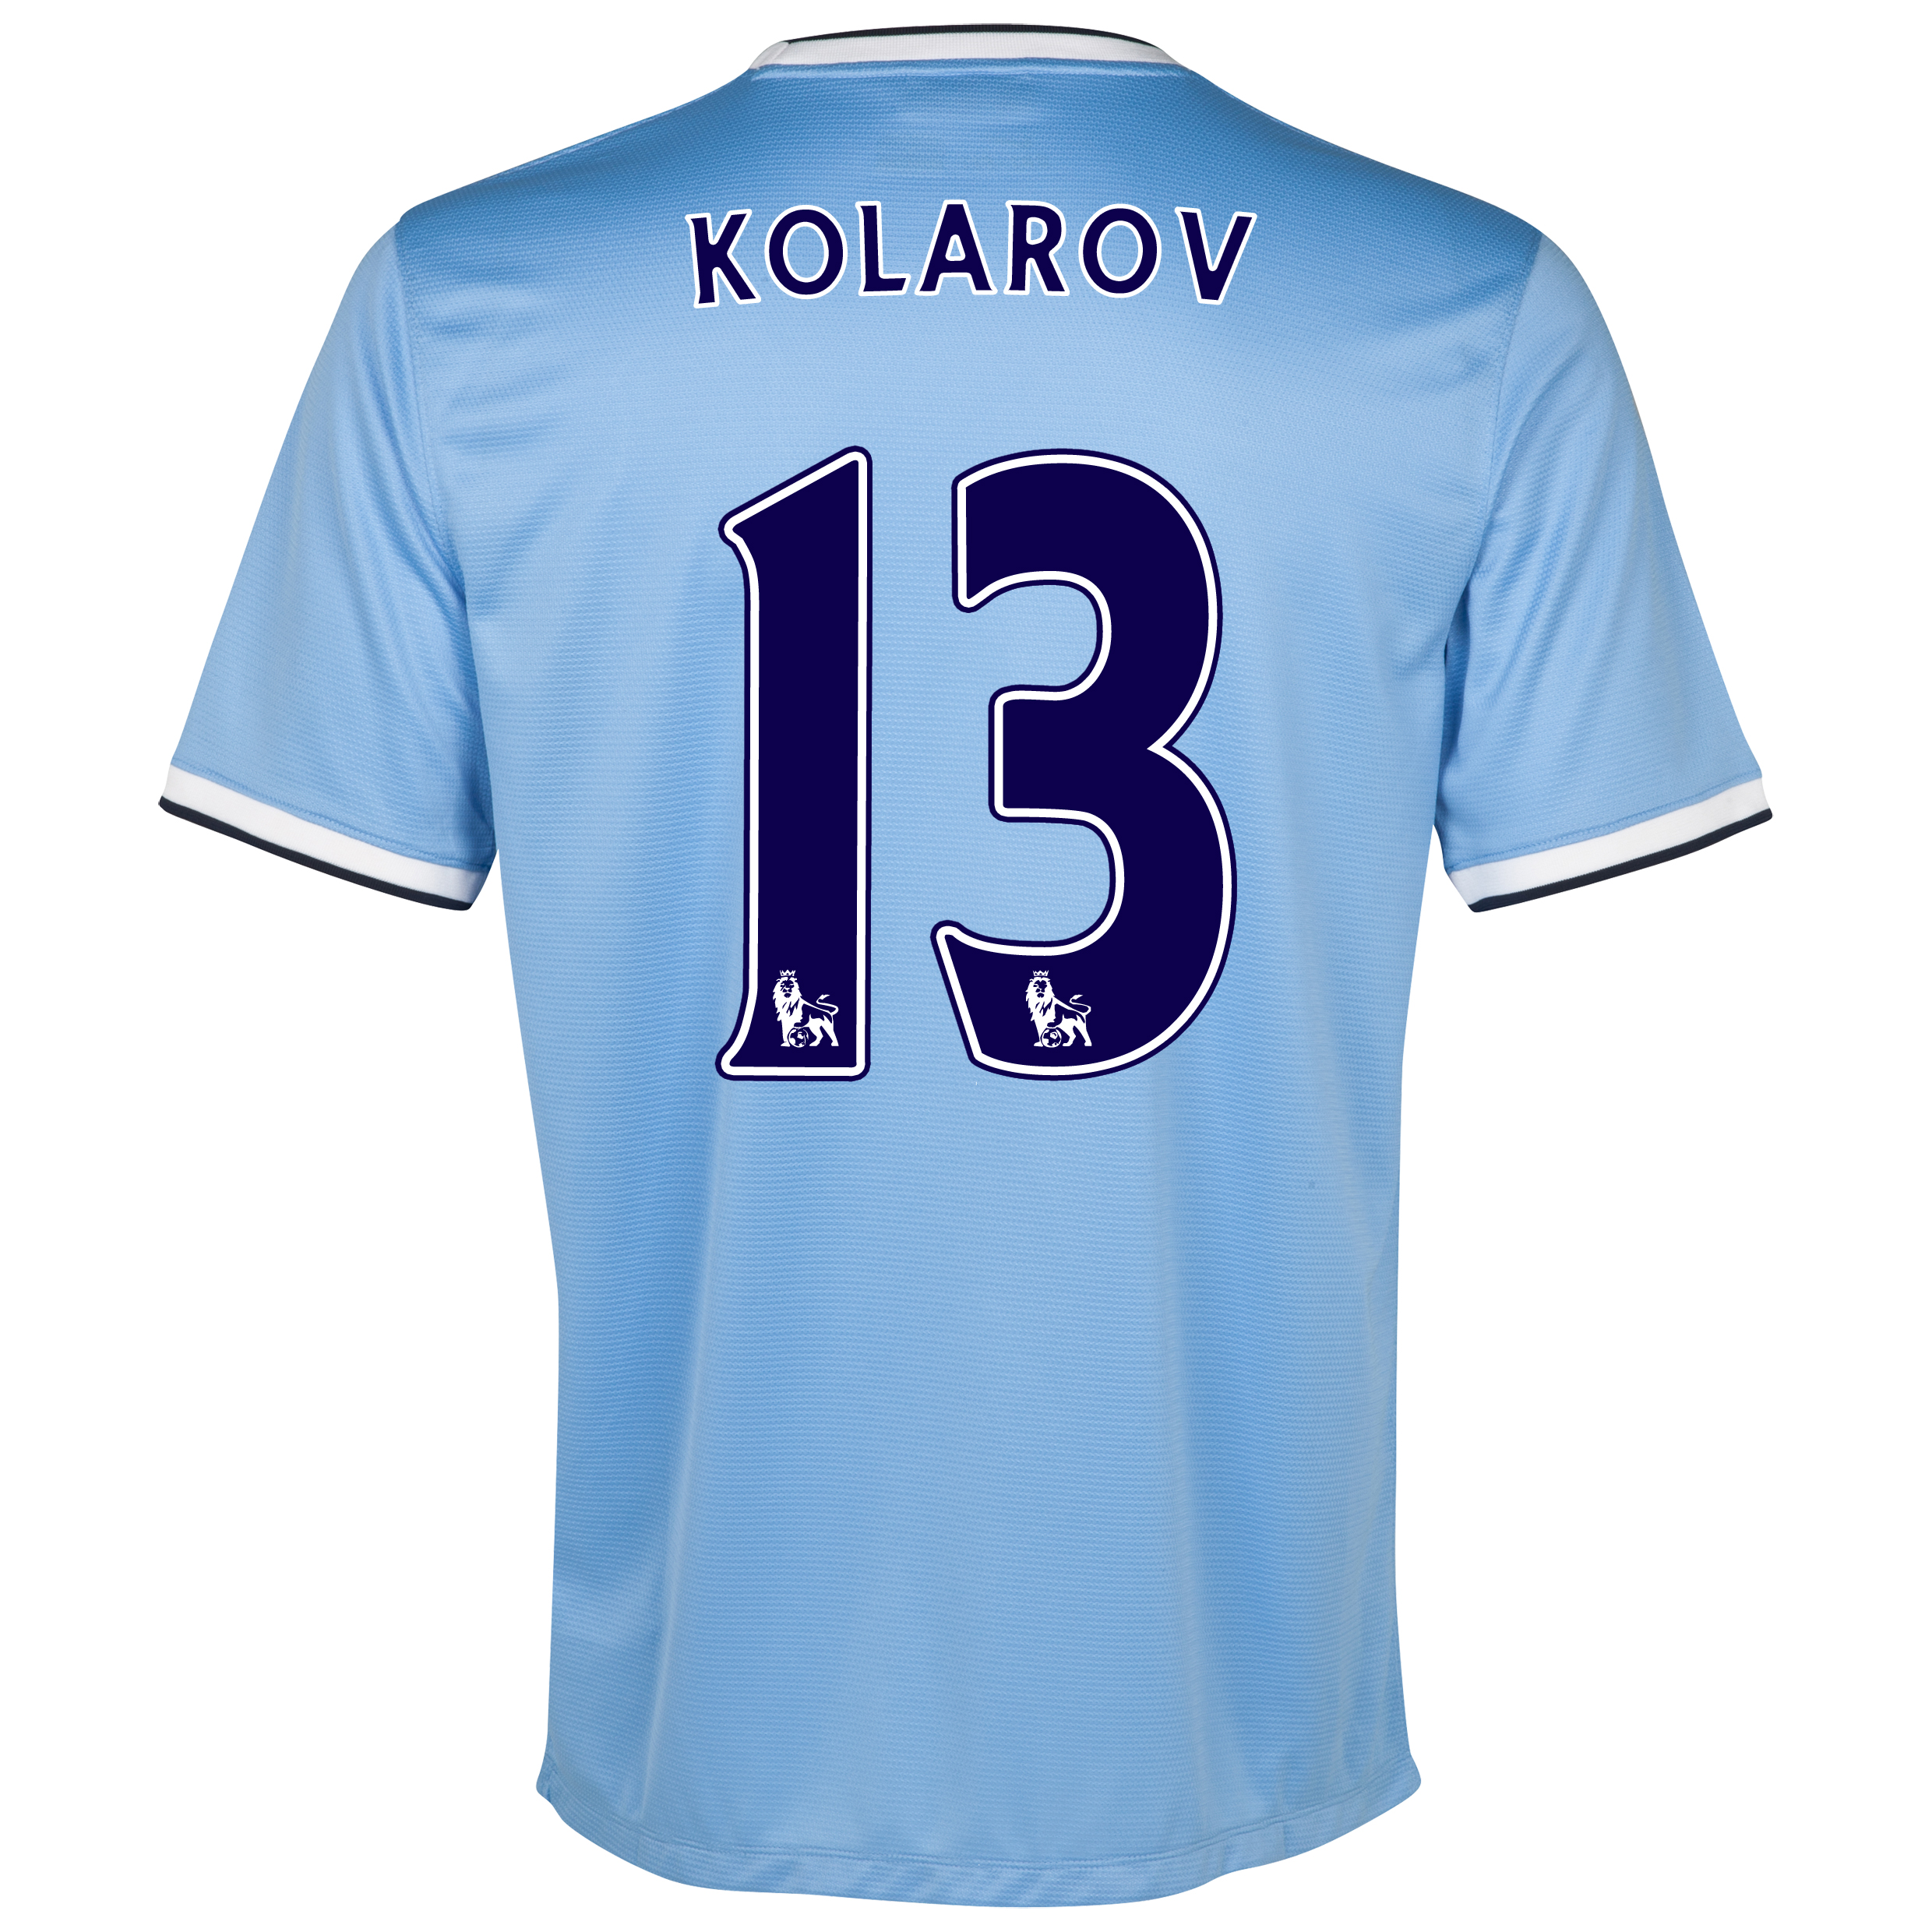 Manchester City Home Shirt 2013/14 - Womens with Kolarov 13 printing